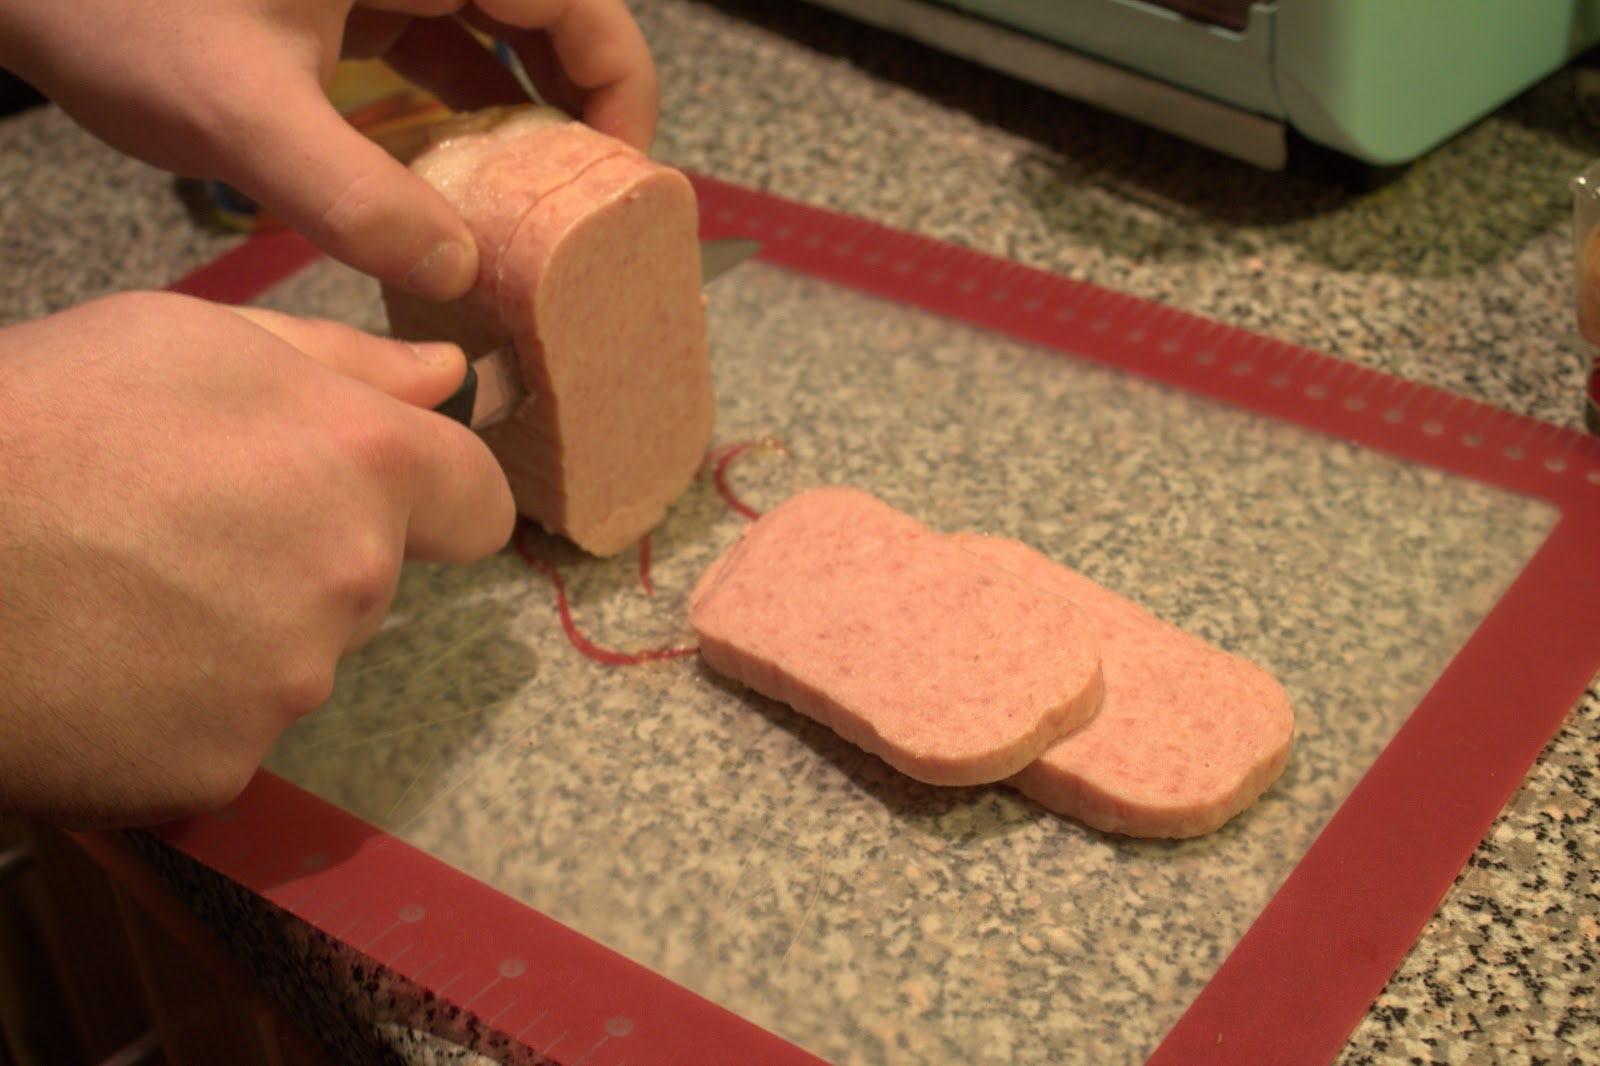 The spam being cut into smaller McRib shaped slabs. Photo by Jessica Collins.